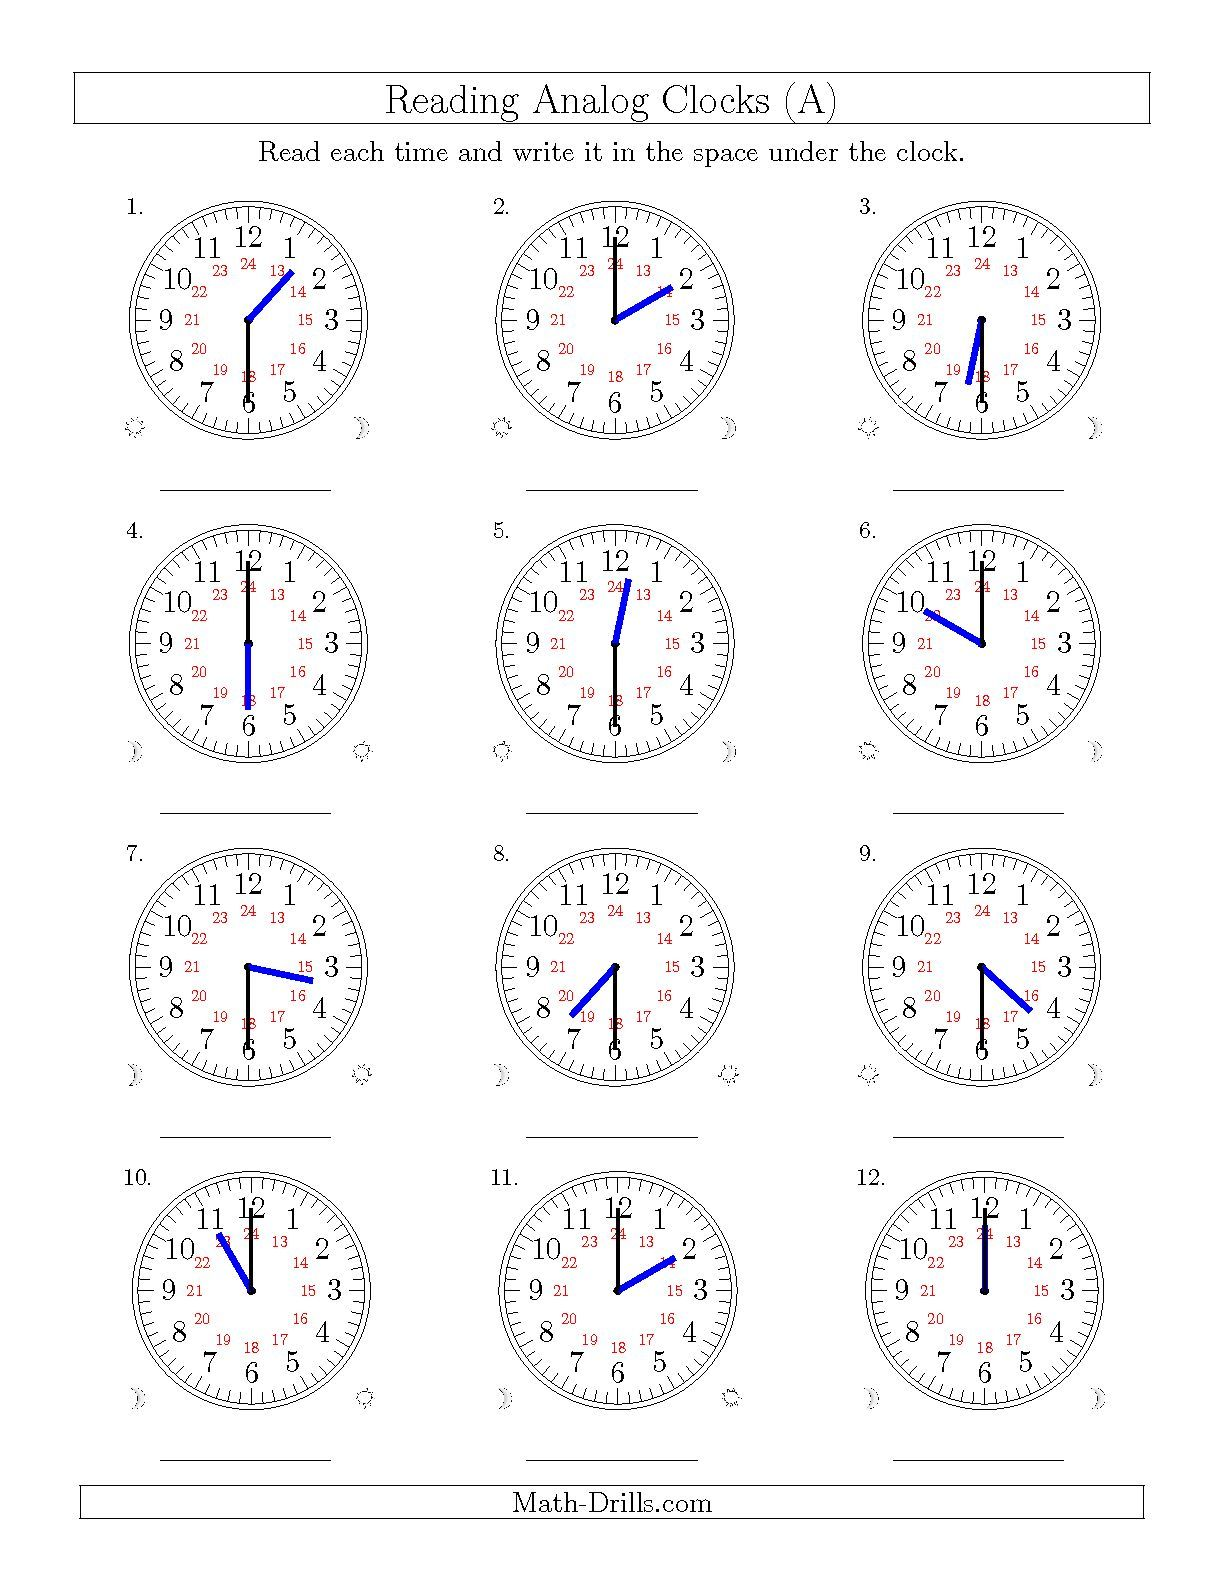 hight resolution of The Reading Time on 24 Hour Analog Clocks in Half Hour Intervals (A)   Clock  worksheets